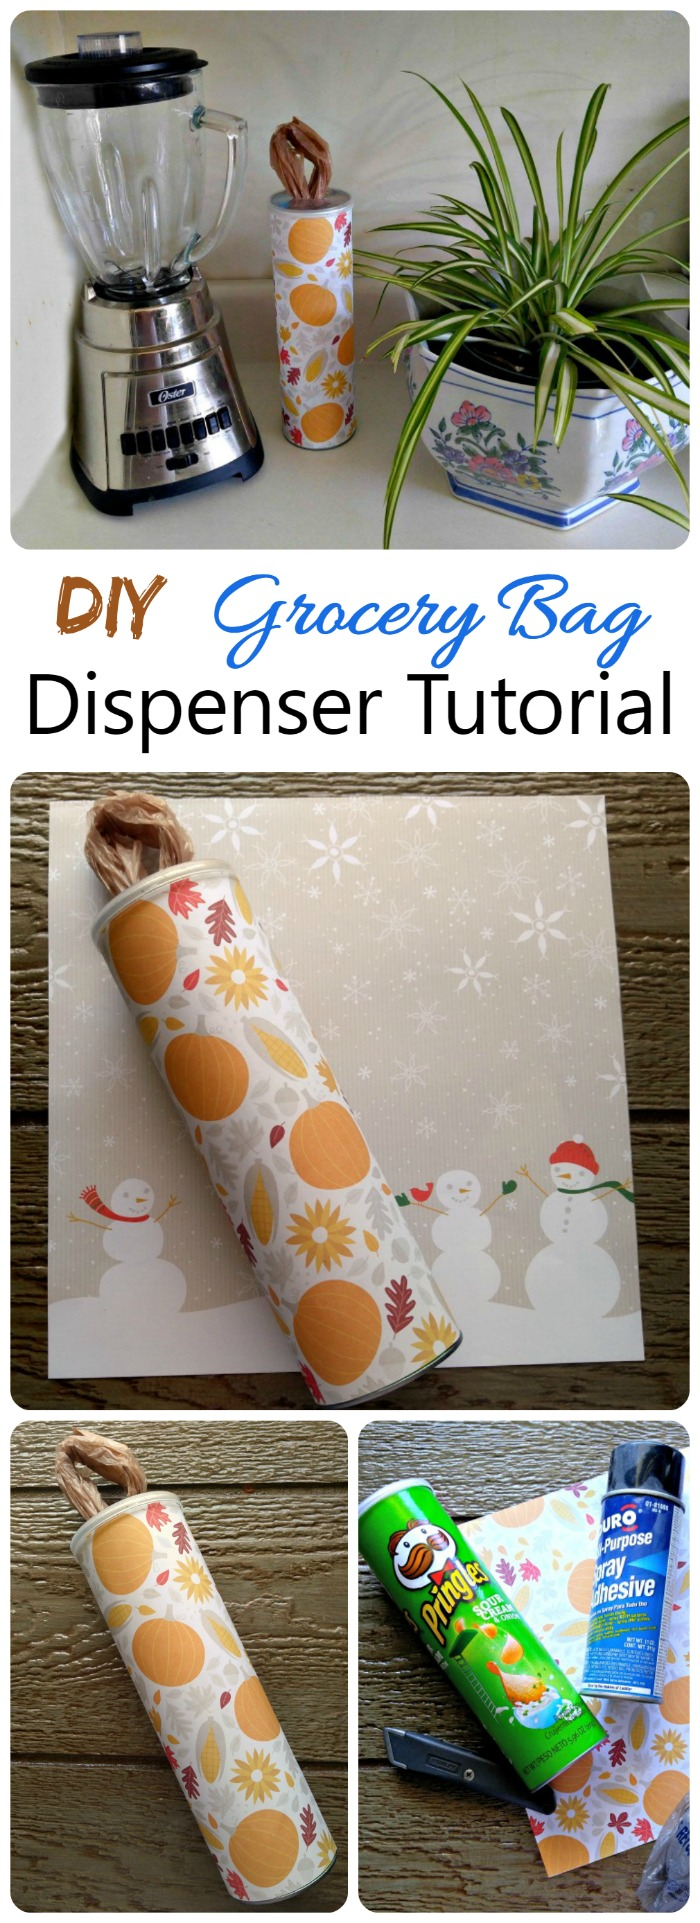 This Grocery Bag Dispenser is super easy to make and has a seasonal fall look to it. Keep all your grocery bags ready to use with this DIY project.